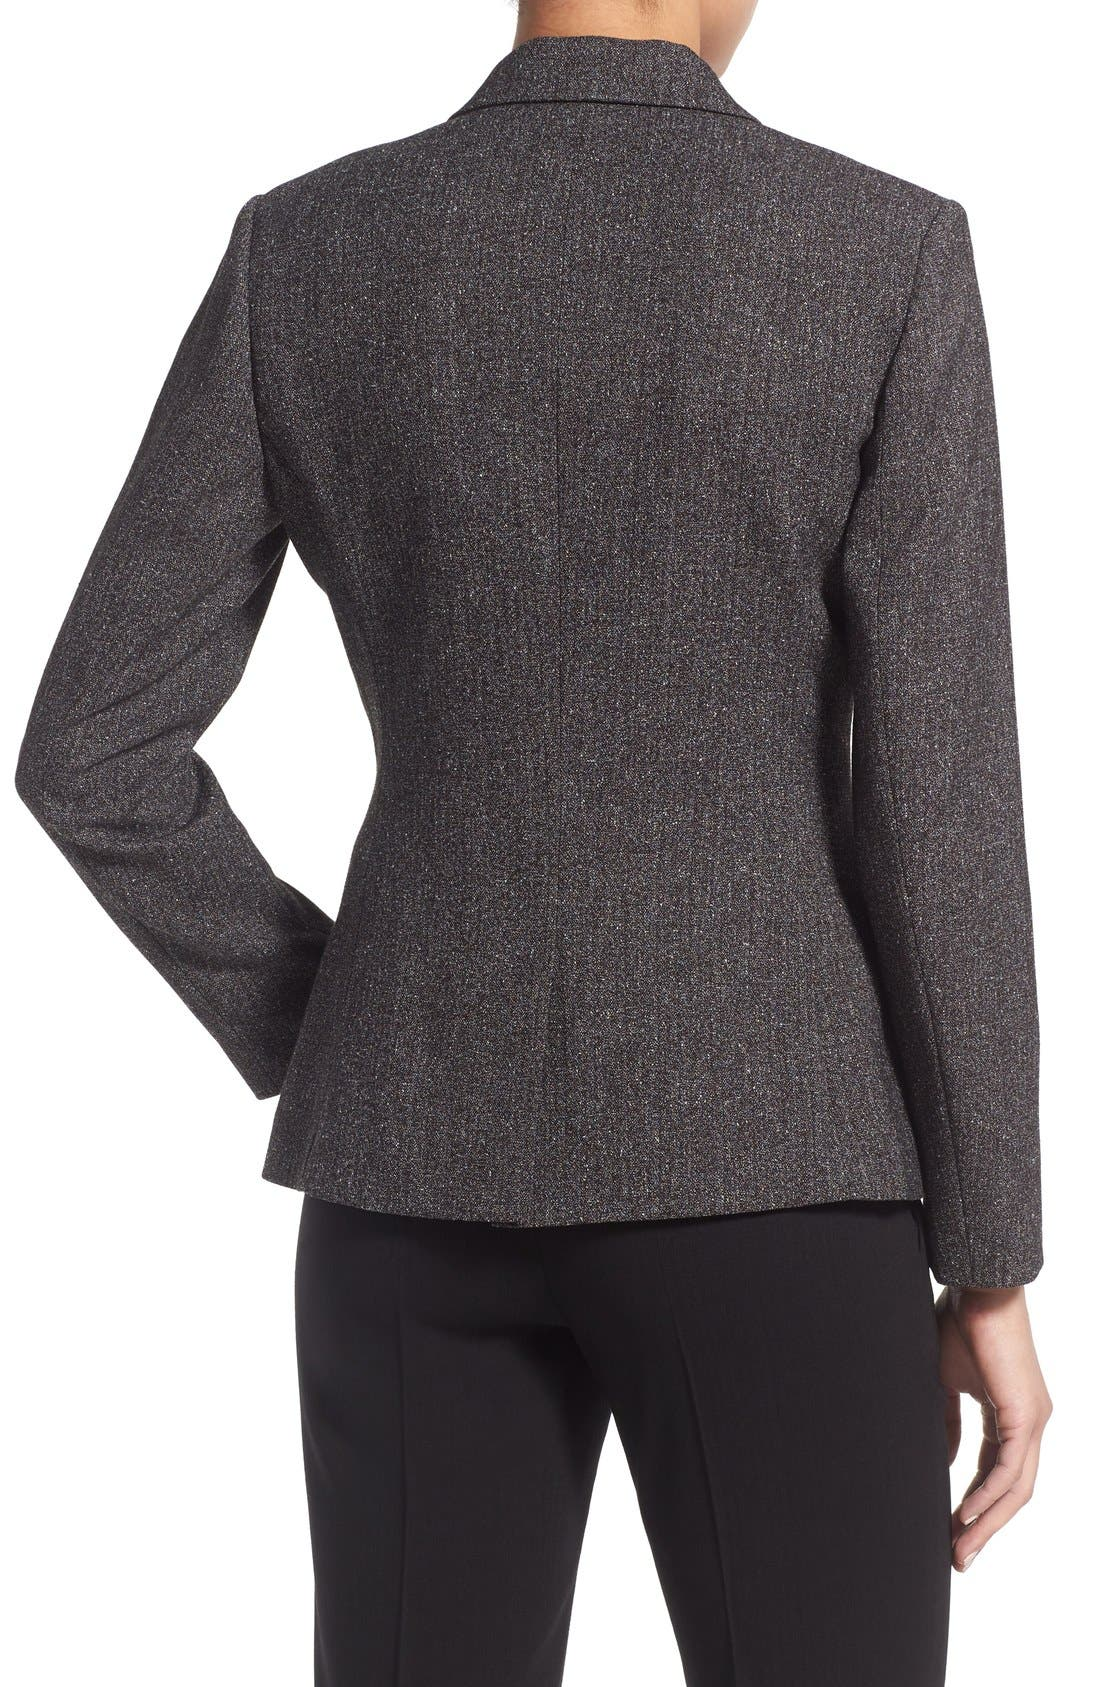 Alternate Image 3  - Vince Camuto Tweed Peplum Blazer (Regular & Petite)